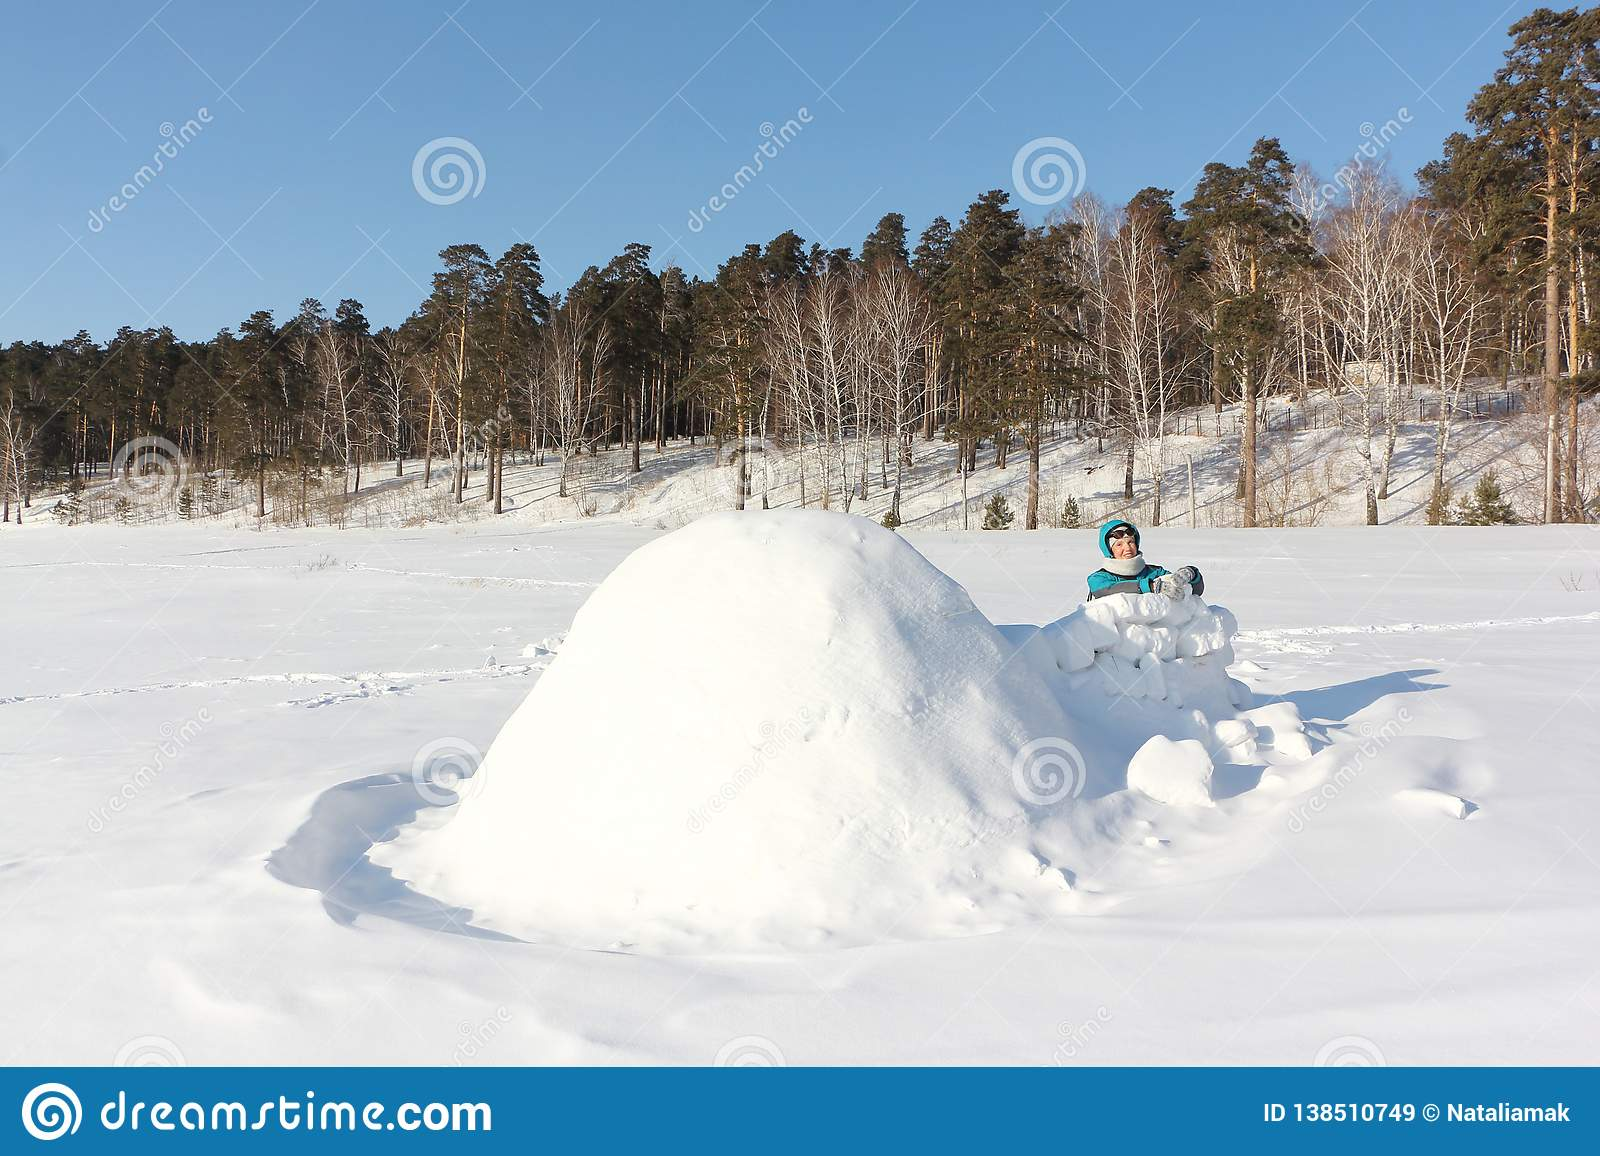 Happy Woman In Warm Clothes Building An Igloo On A Snow